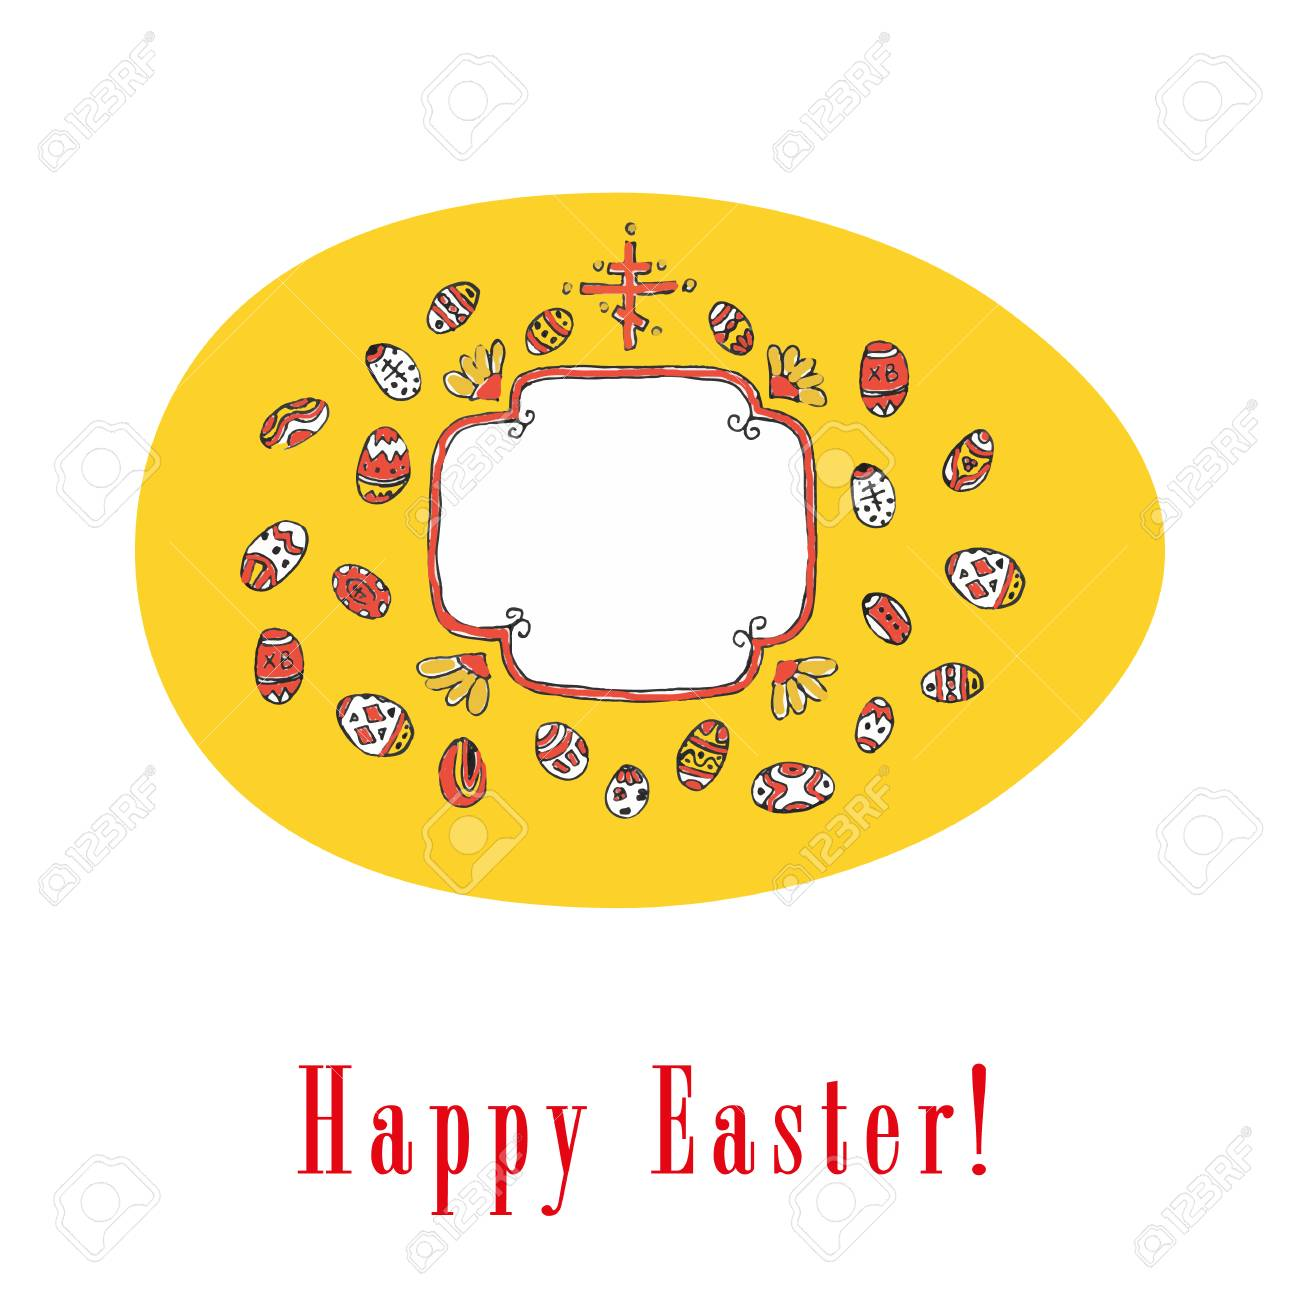 Traditional easter greeting with colored eggs royalty free cliparts traditional easter greeting with colored eggs stock vector 37643013 m4hsunfo